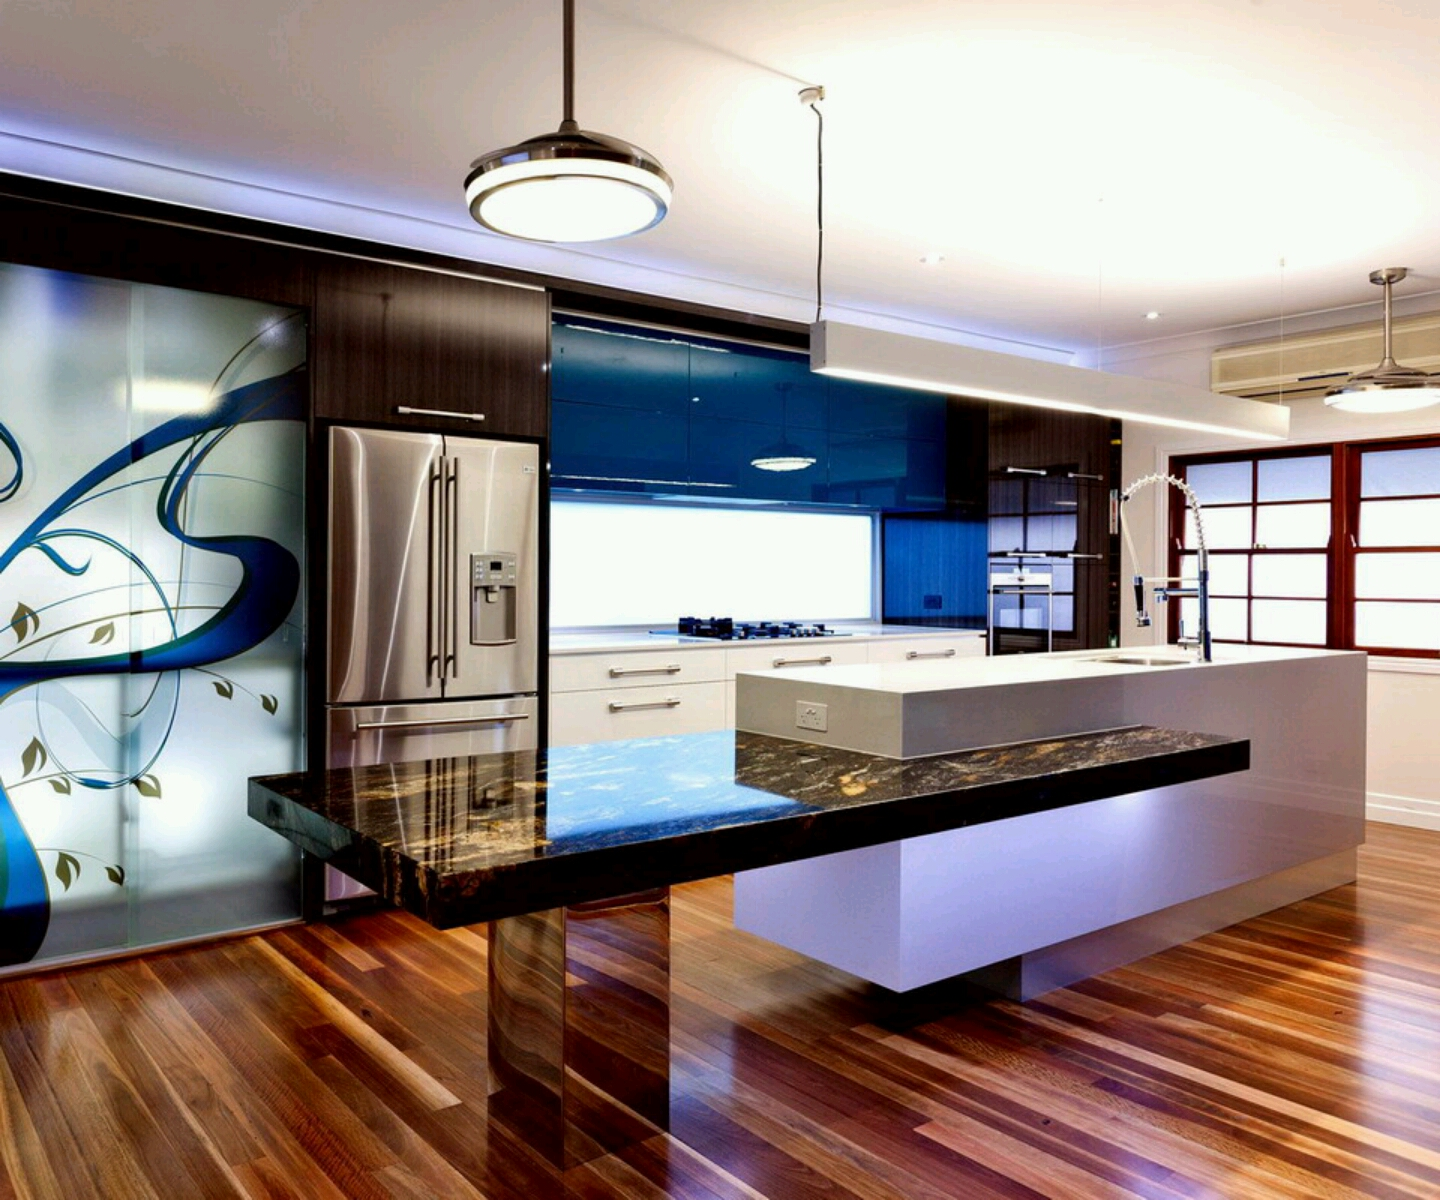 New home designs latest ultra modern kitchen designs ideas for House design kitchen ideas